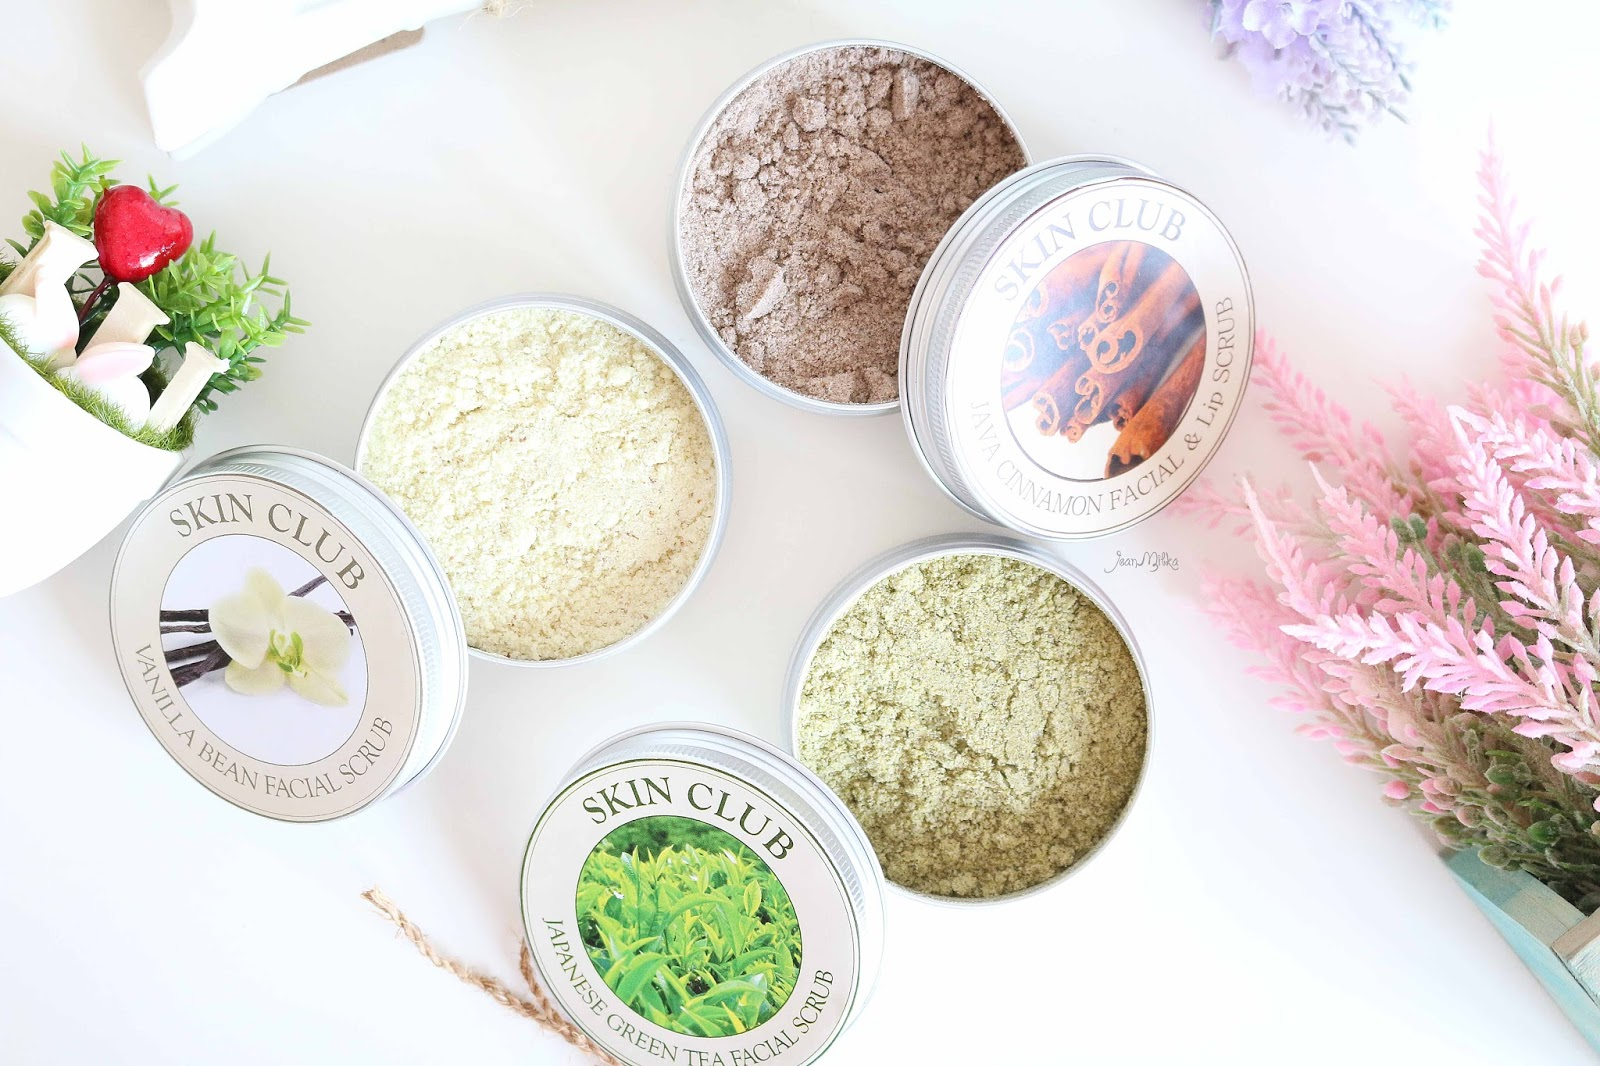 skin club, scrub, facial scrub, lip scrub, homemade, homemade scrub, review, mask republic, skin care, beauty, natural mask